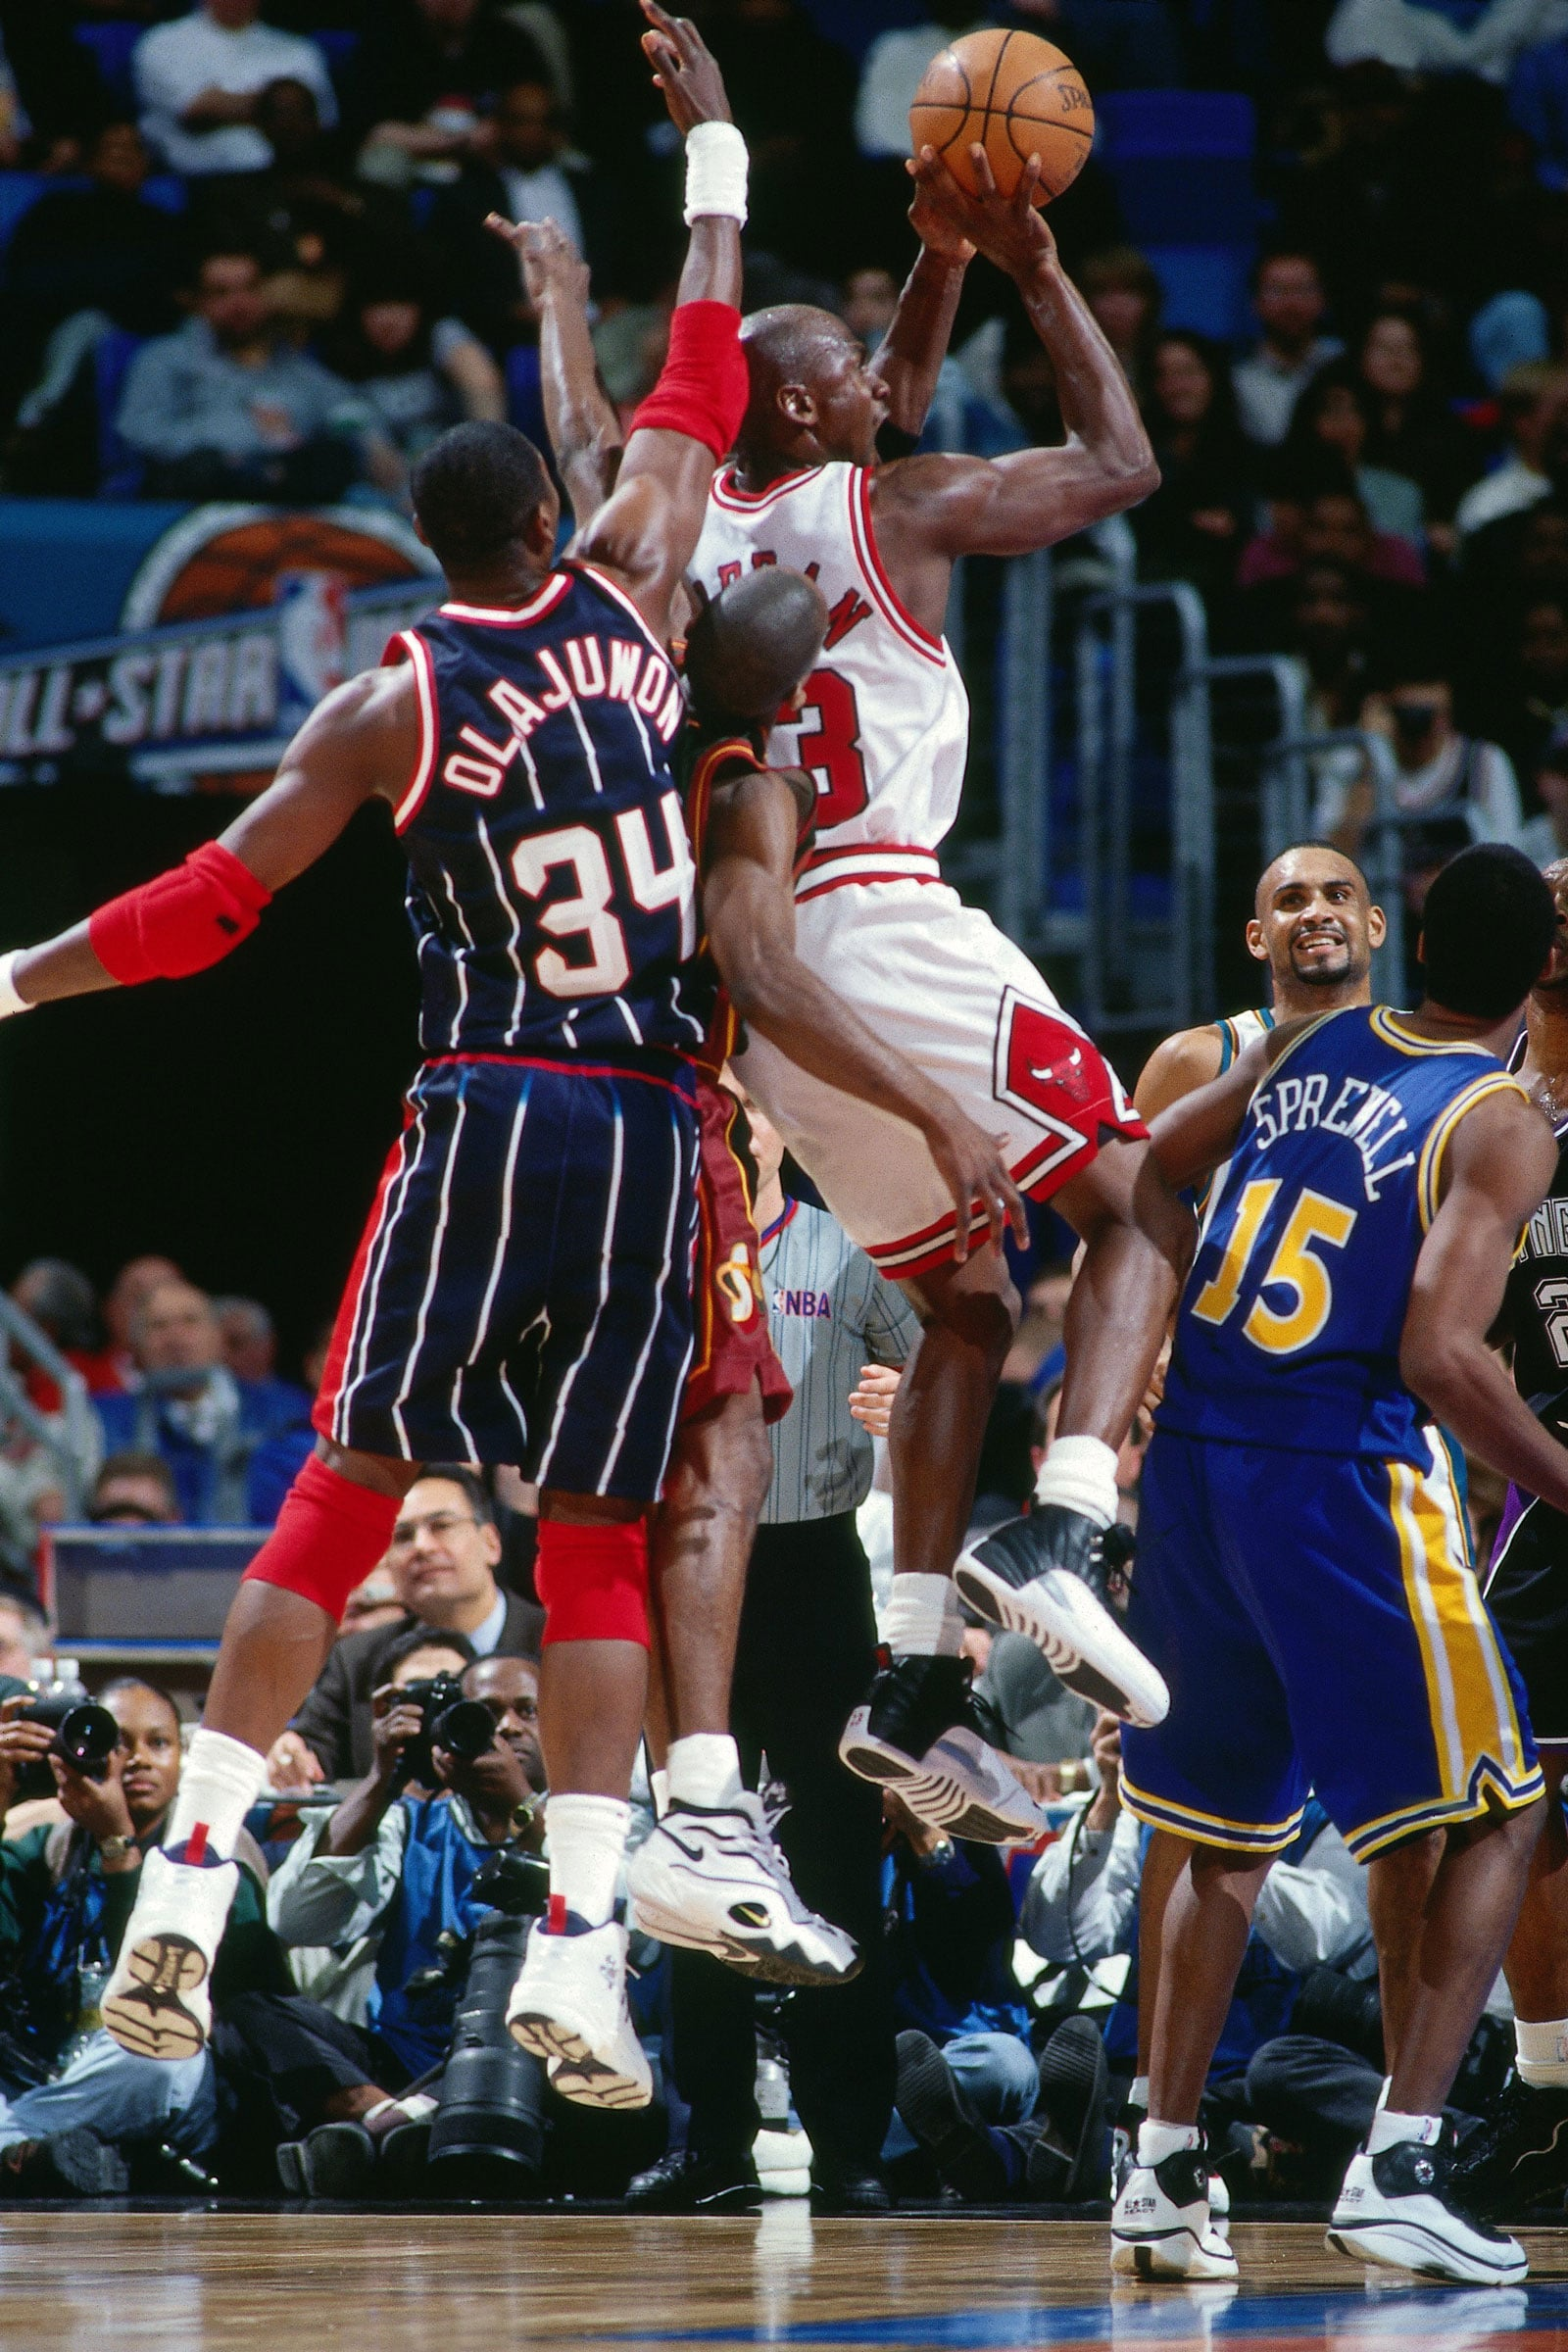 Michael Jordan #23 of the Eastern Conference shoots against Hakeem Olajuwon #34 of the Western Conference during the 1997 All-Star Game on February 9, 1997 at Gund Arena in Cleveland, Ohio